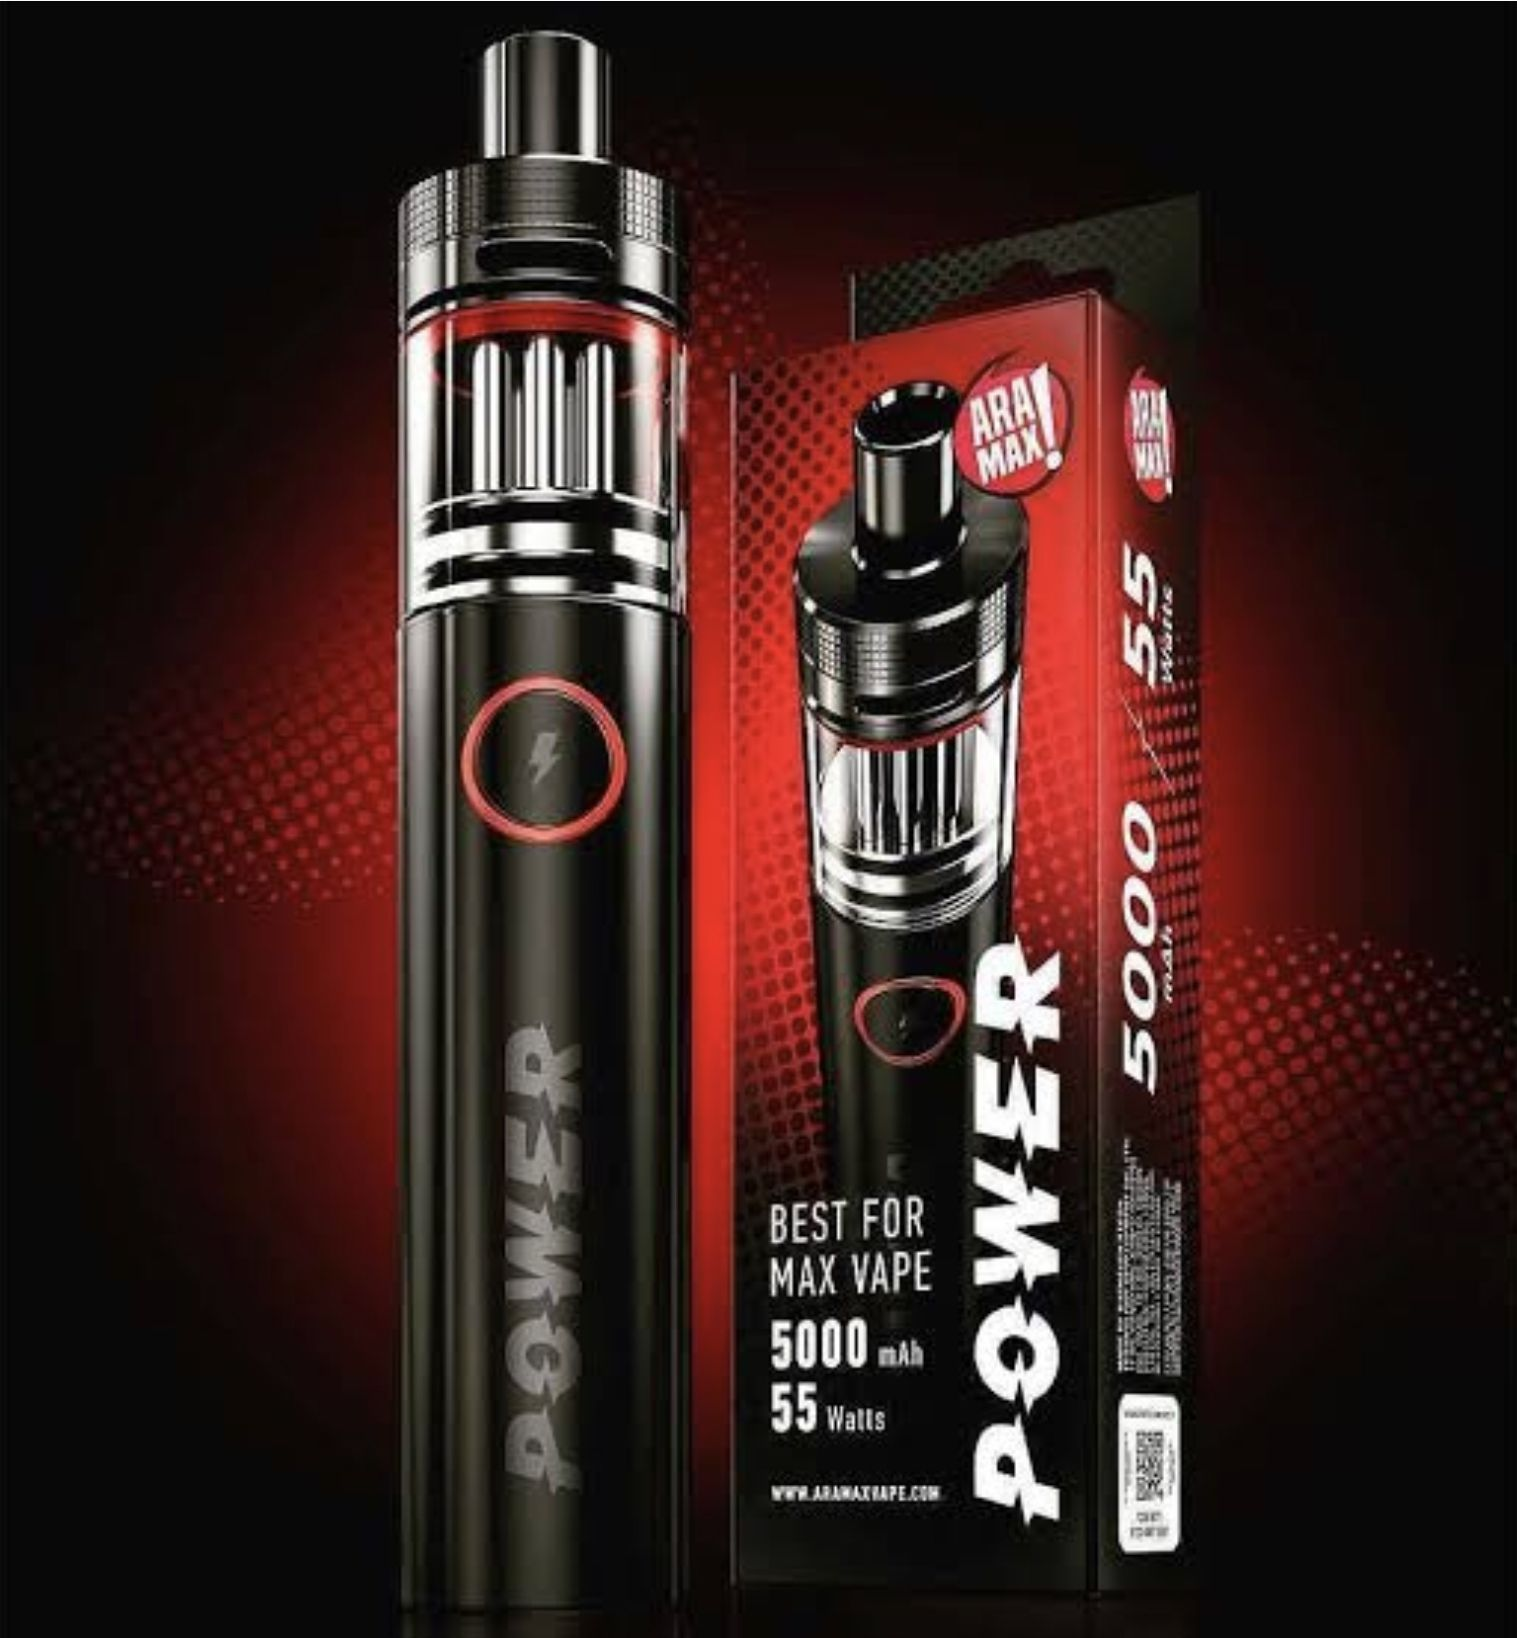 Aramax POWER Vape Pen Kit 5000 mAh 55W